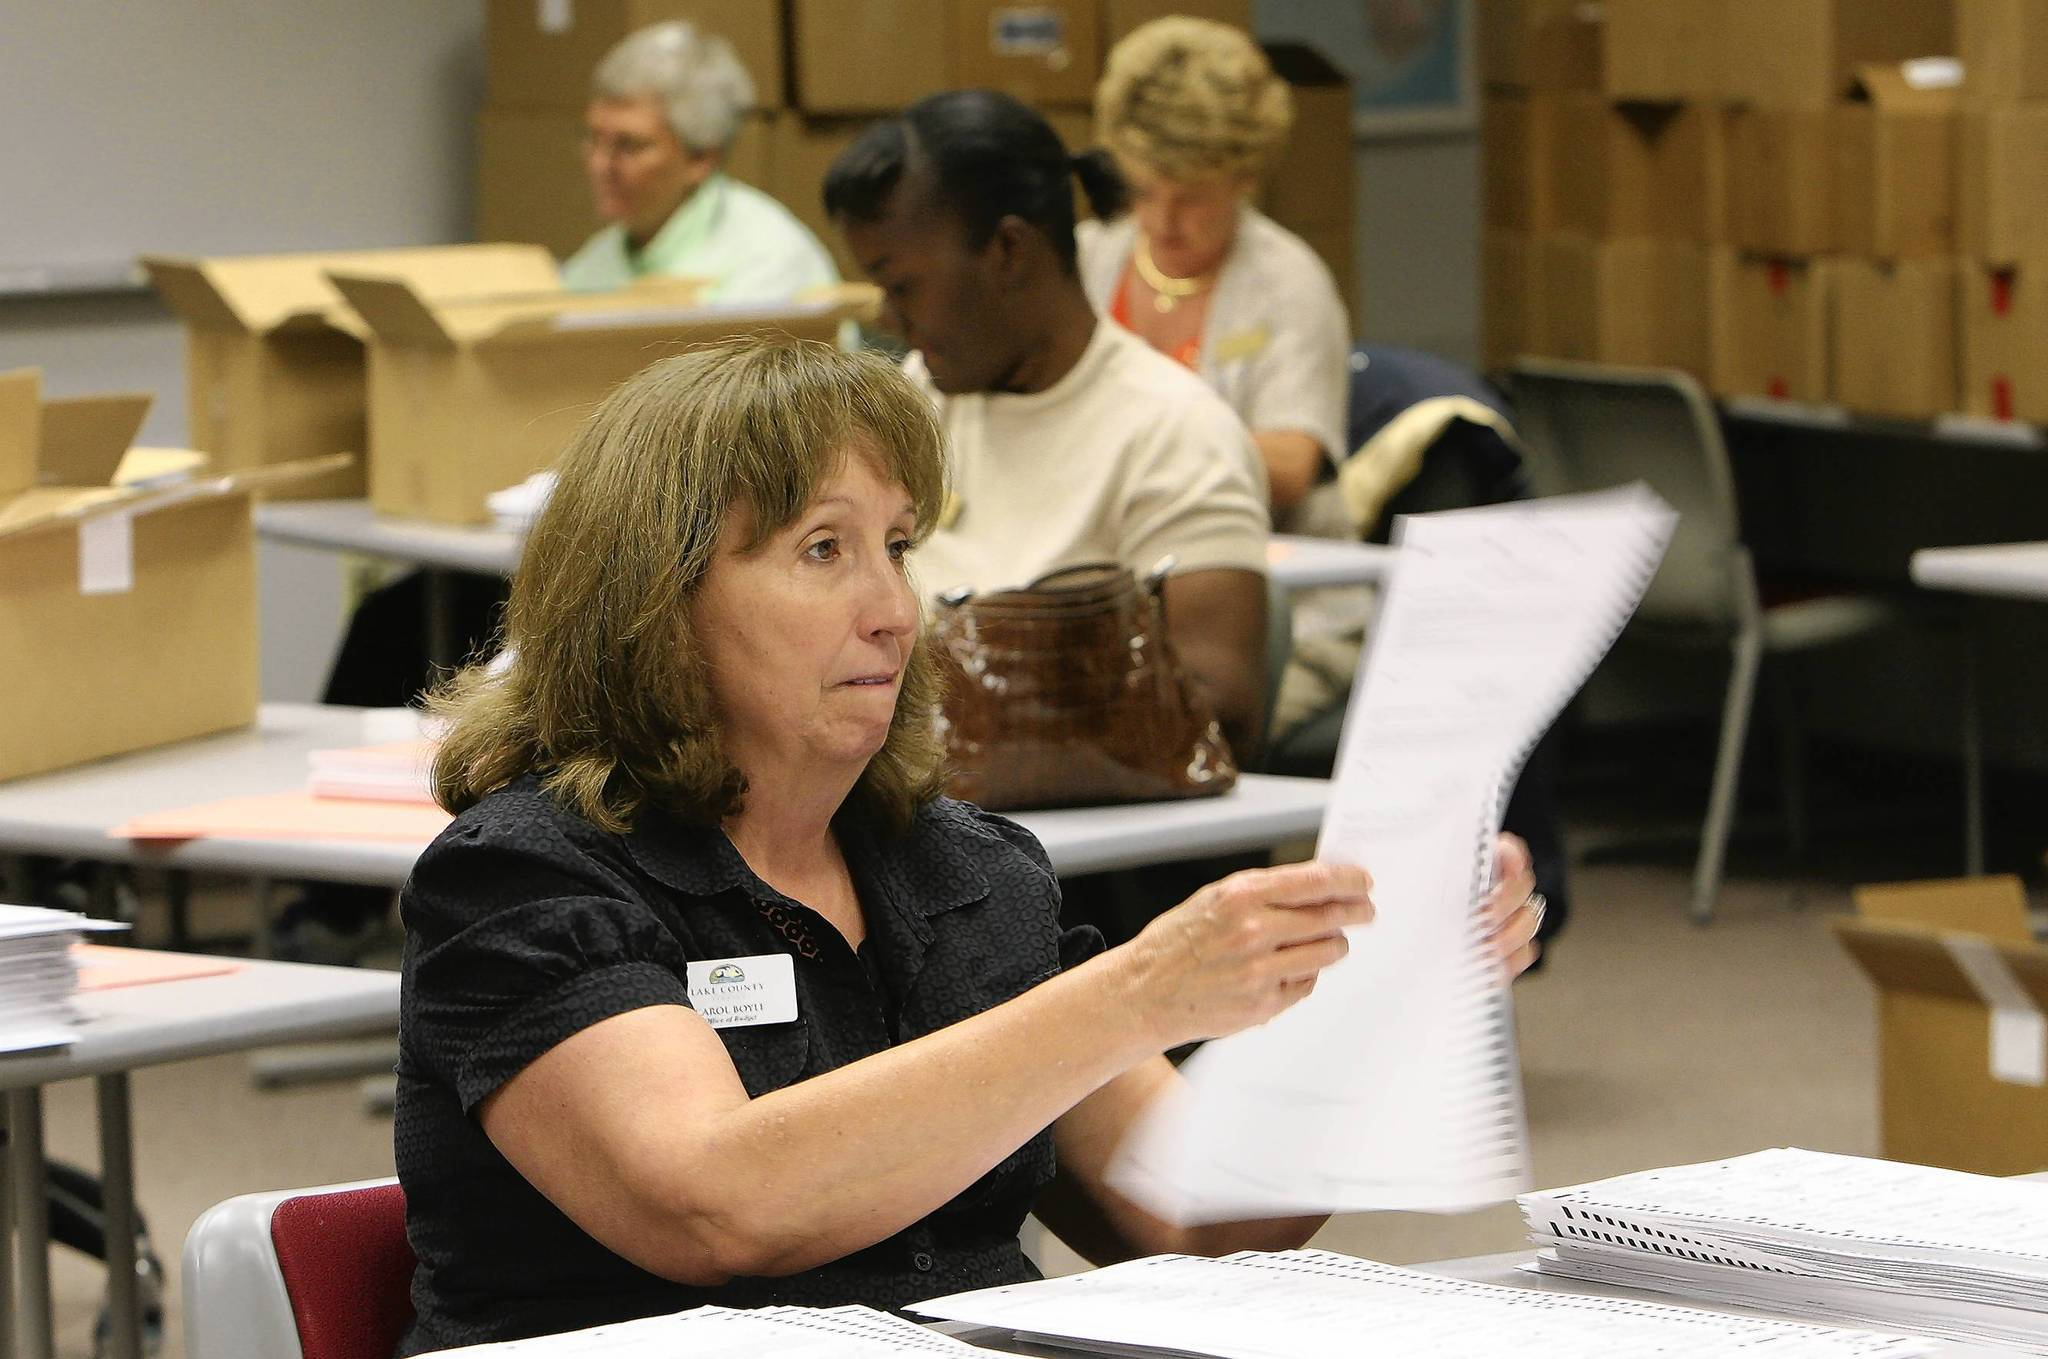 Carol Boyle separates ballots to be re-counted on Tuesday, November 13, 2012, in Tavares, Fl. Lake County officials started a mandatory recount this morning,  of the Mount Dora City Council District 3 race, with Ed Rowlett holding a one-vote lead over incumbent Jim Yatsuk, and the Lake County School Board District 2 race between chairwoman Rosanne Brandeburg and member Jim Miller.  (Tom Benitez/Orlando Sentinel)